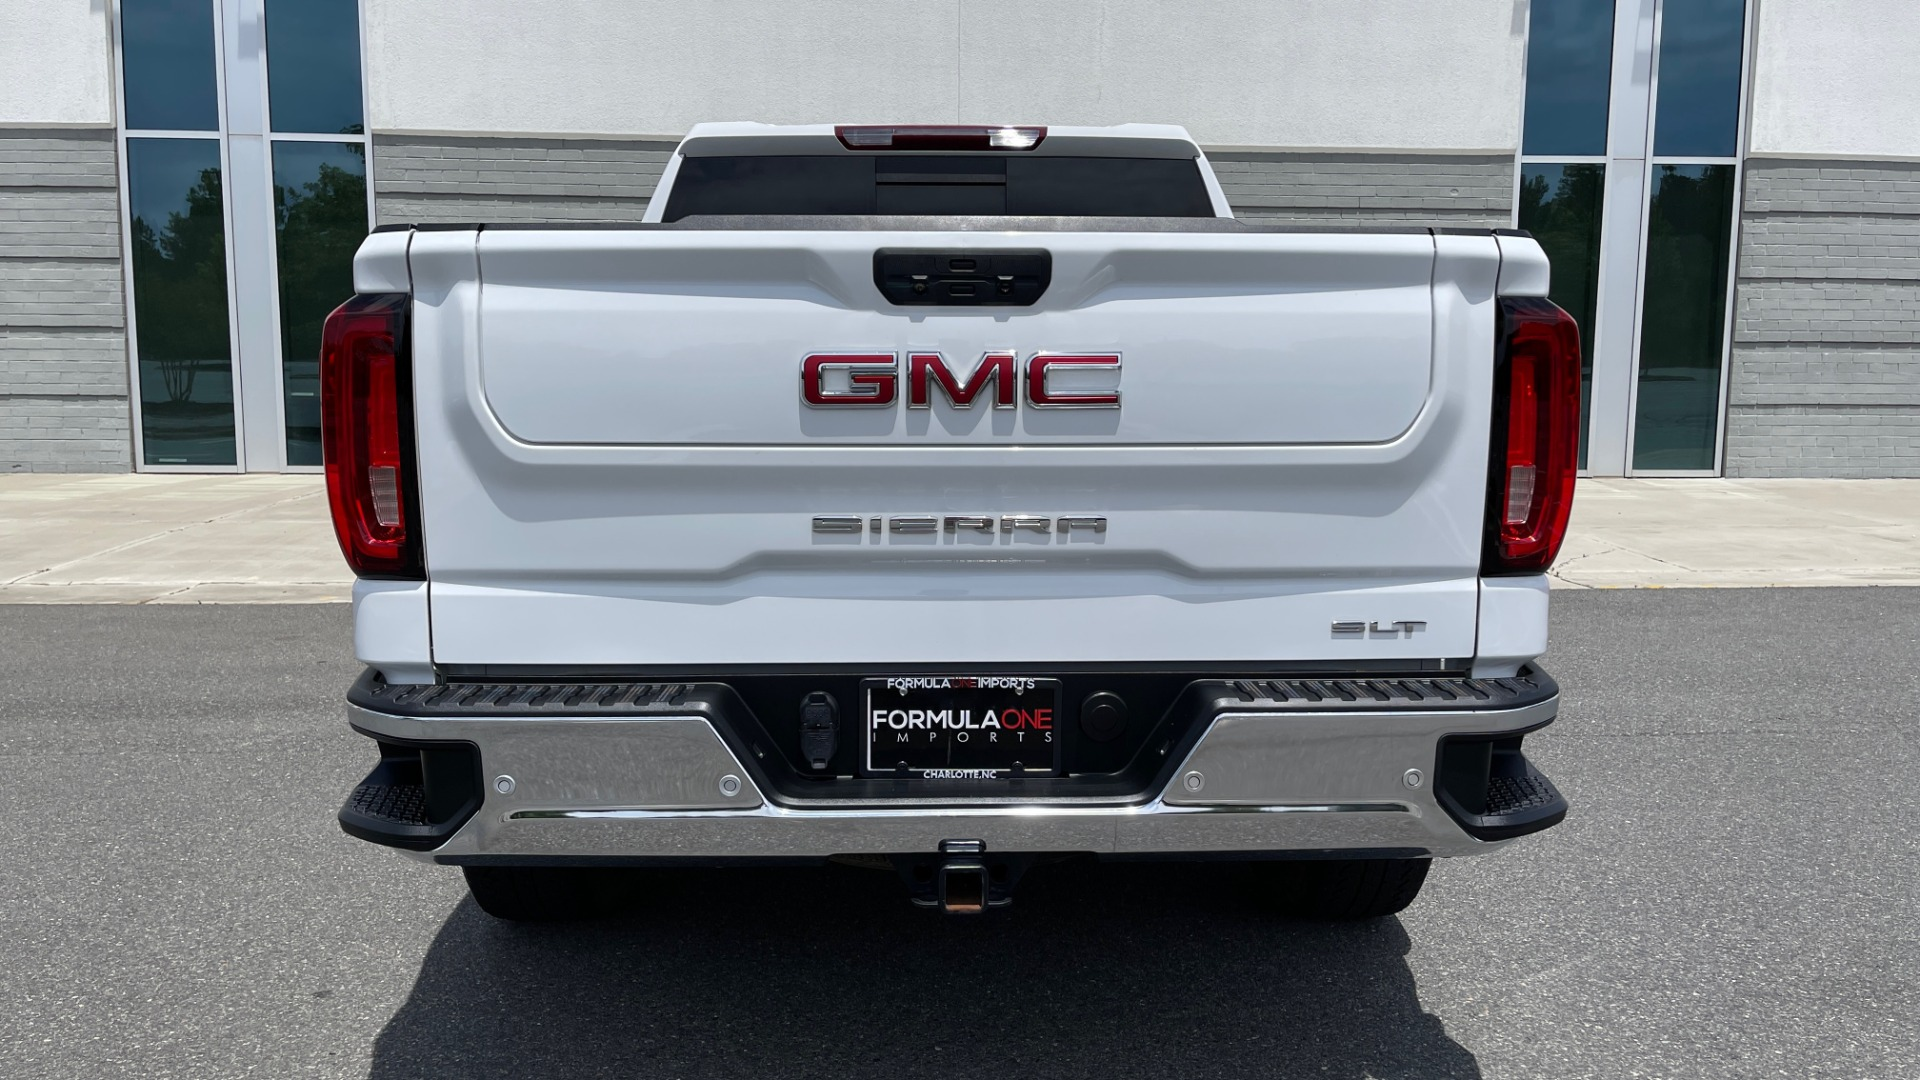 Used 2019 GMC SIERRA 1500 SLT 4X4 CREWCAB / 5.3L V8 / 8-SPD AUTO / NAV / BOSE / REARVIEW for sale $49,999 at Formula Imports in Charlotte NC 28227 19